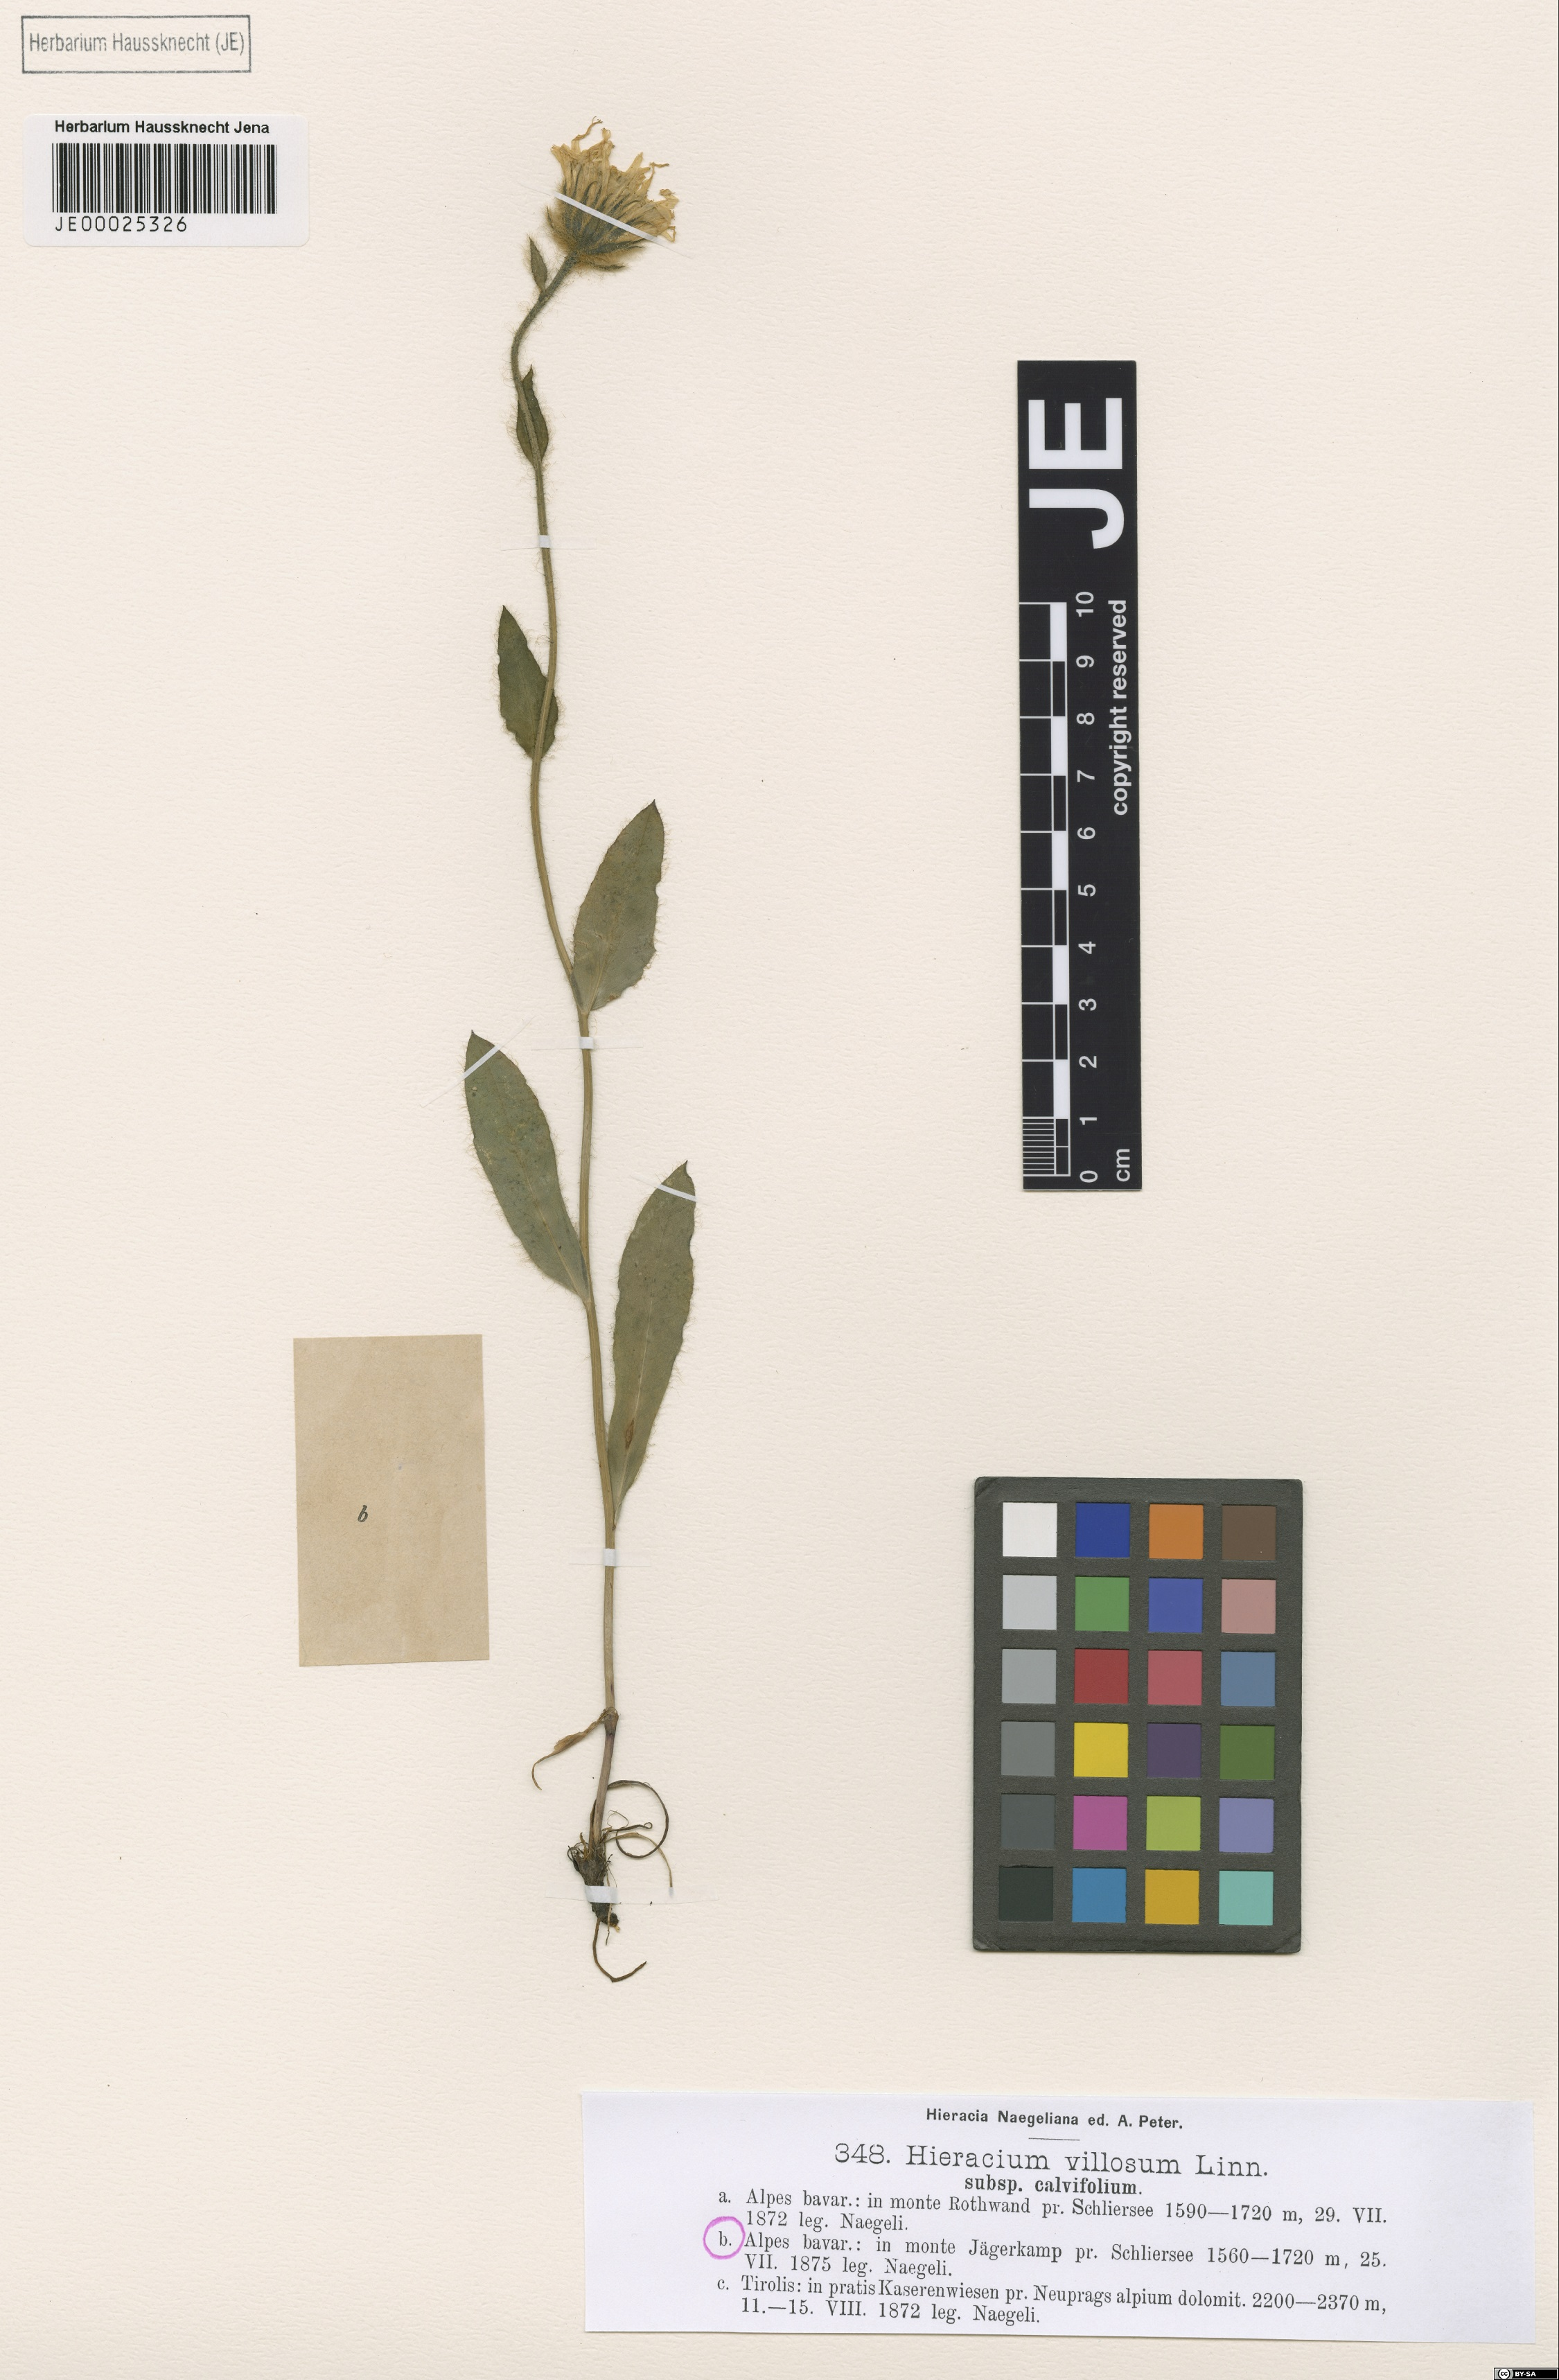 Herbarium: JE 00025326 syntypus  - Source: http://herbarium.univie.ac.at/database/detail.php?ID=1039669<br>by